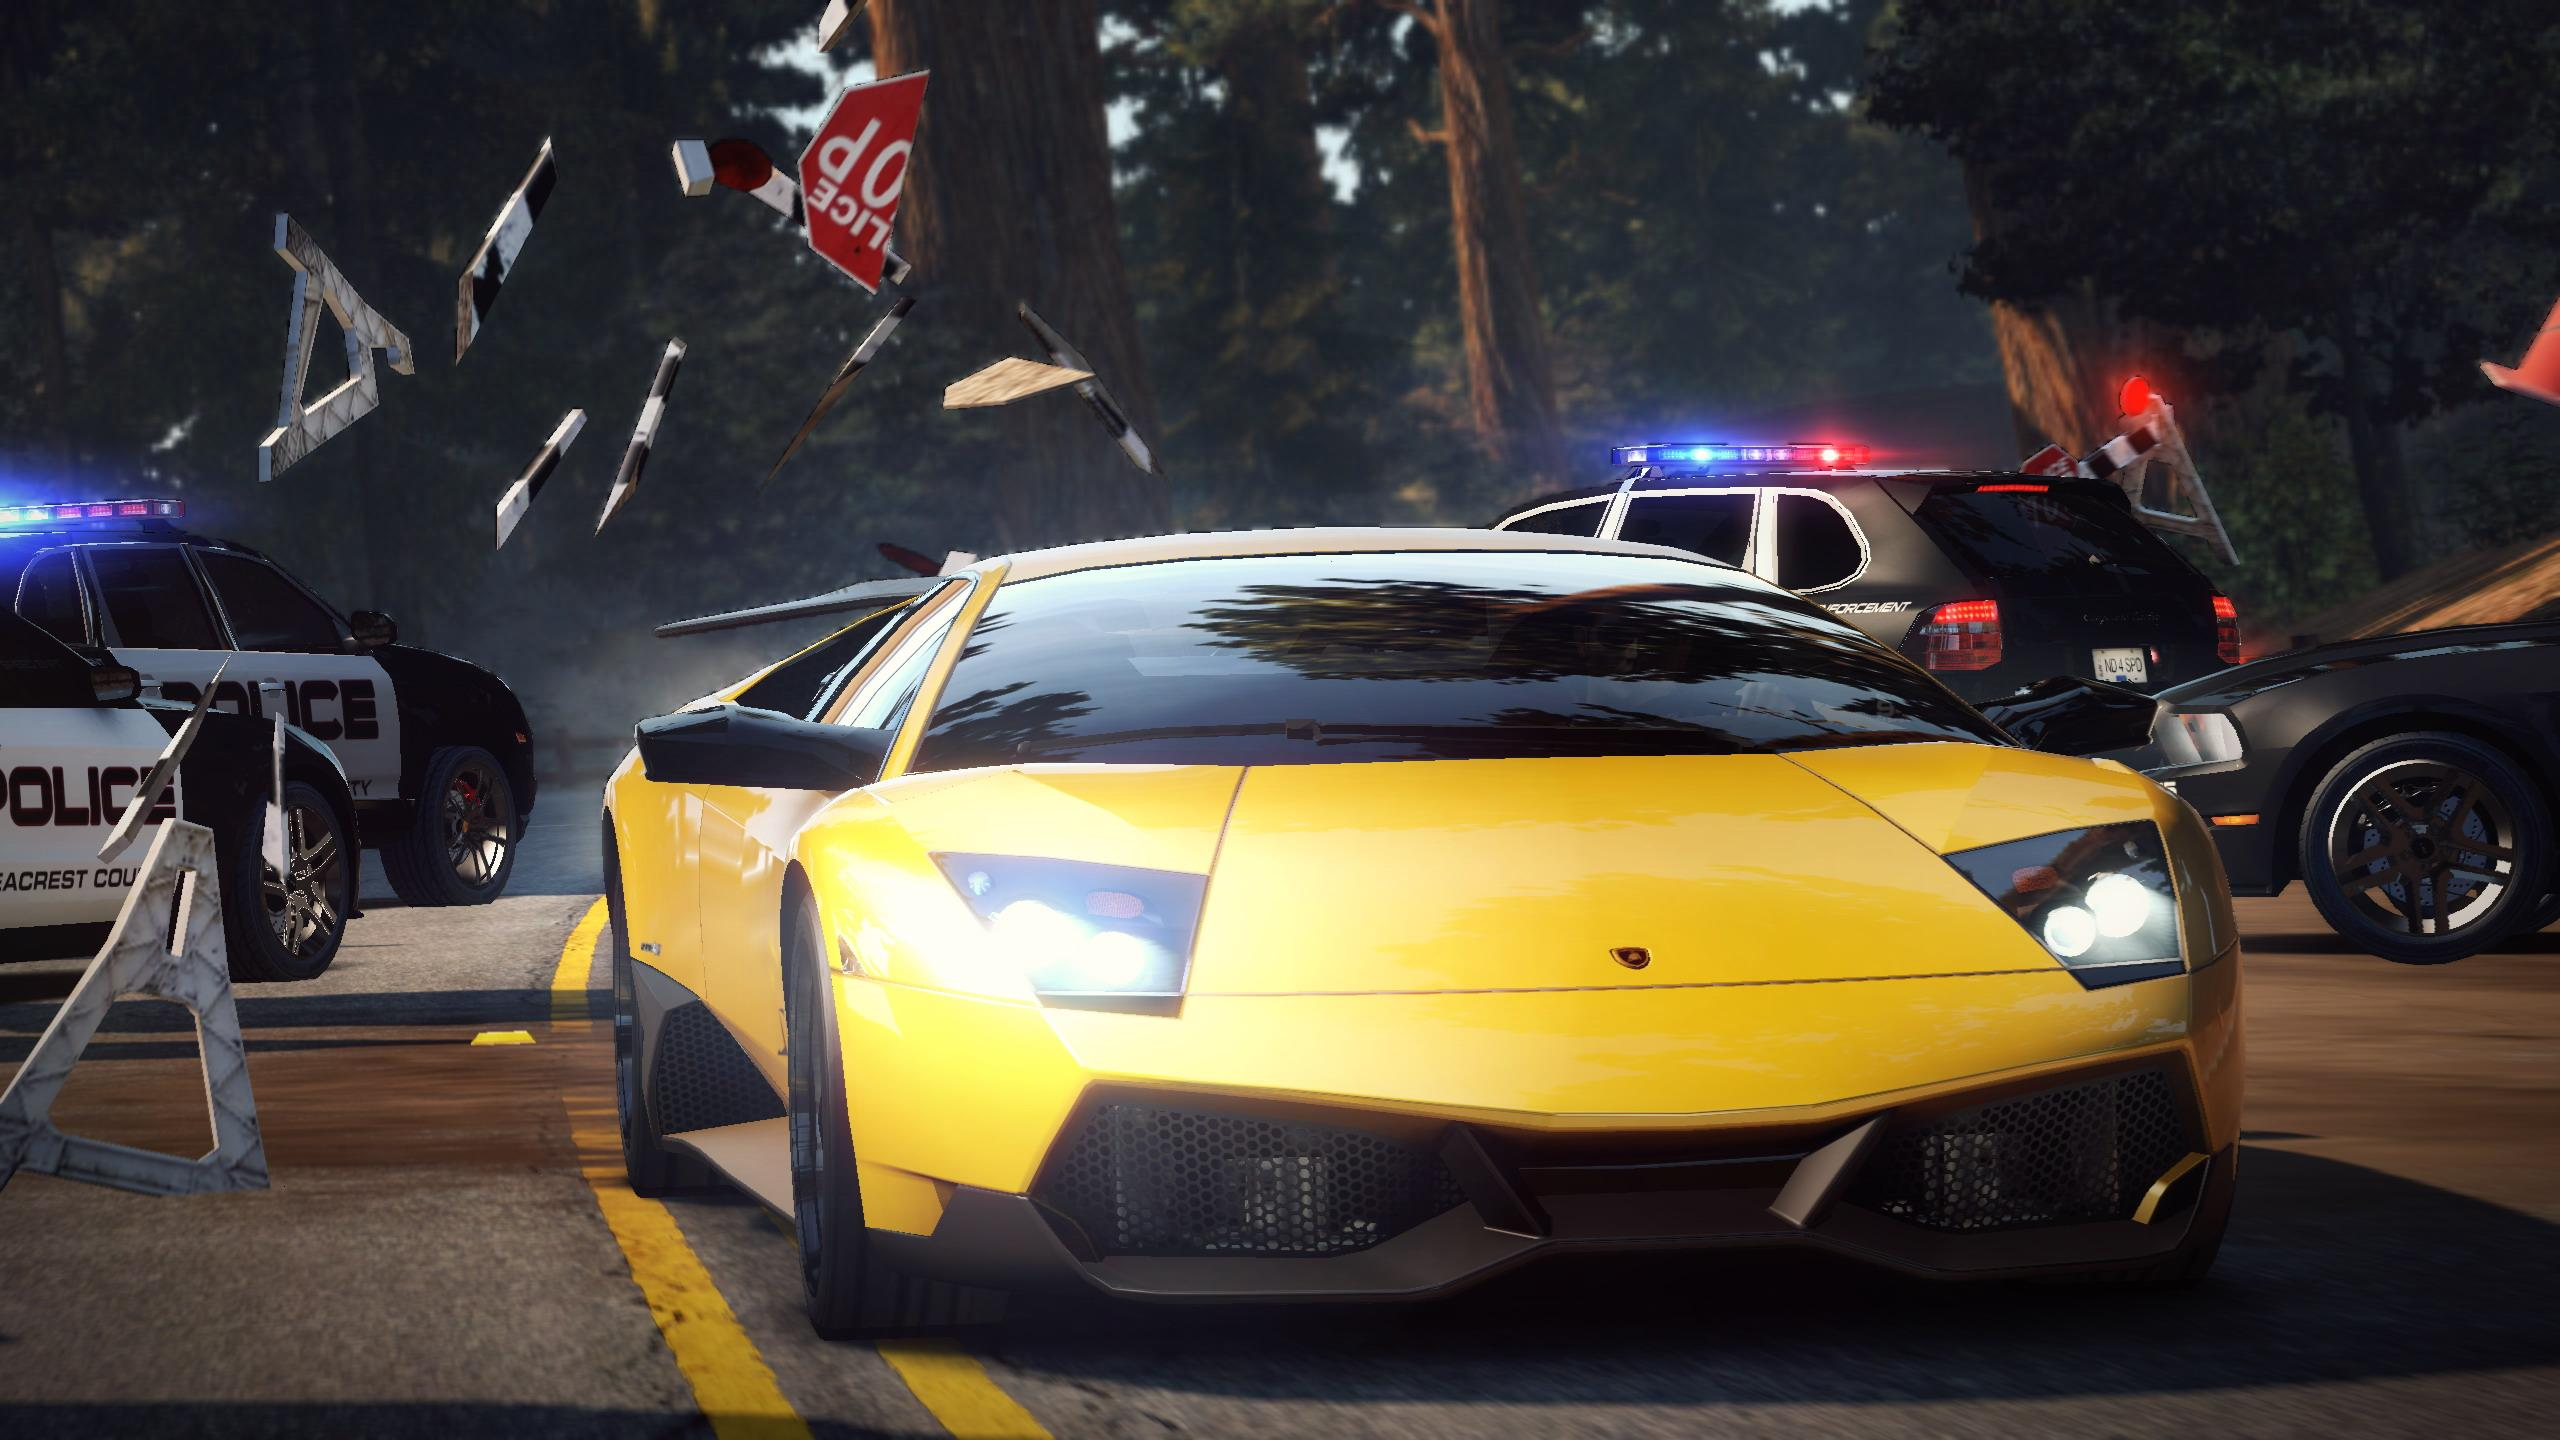 NFS Hot Pursuit (2010)